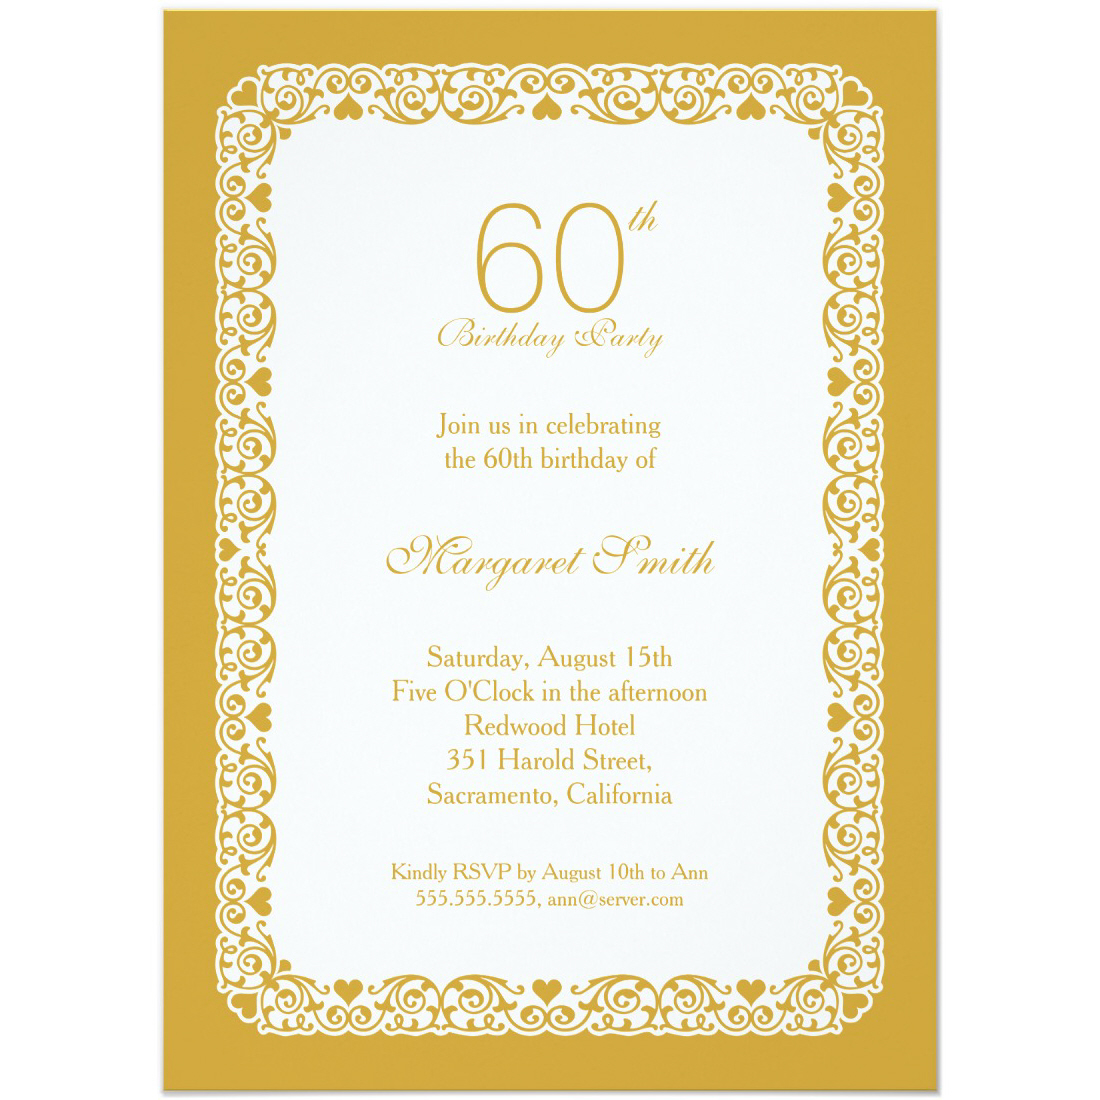 60th birthday party photo invitations ; Elegant-personalized-60th-birthday-party-invitations-Choose-your-own-colors